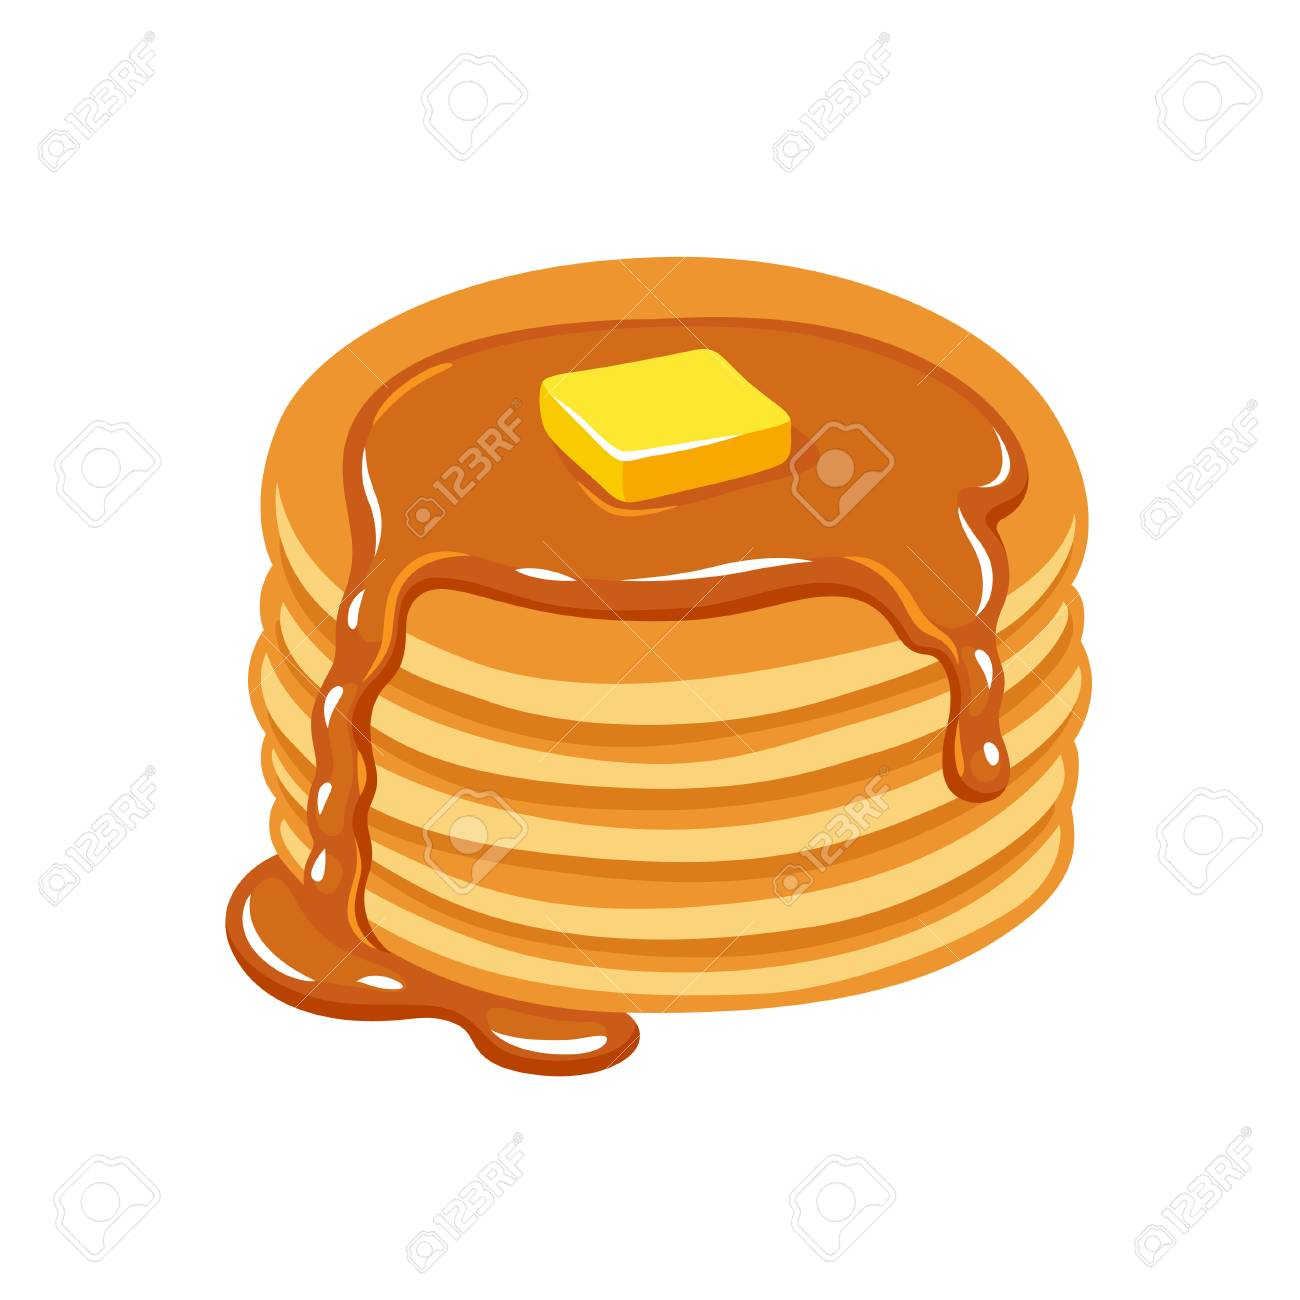 1300x1300 Stack Of Pancakes With Maple Syrup And Piece Of Butter. Hand